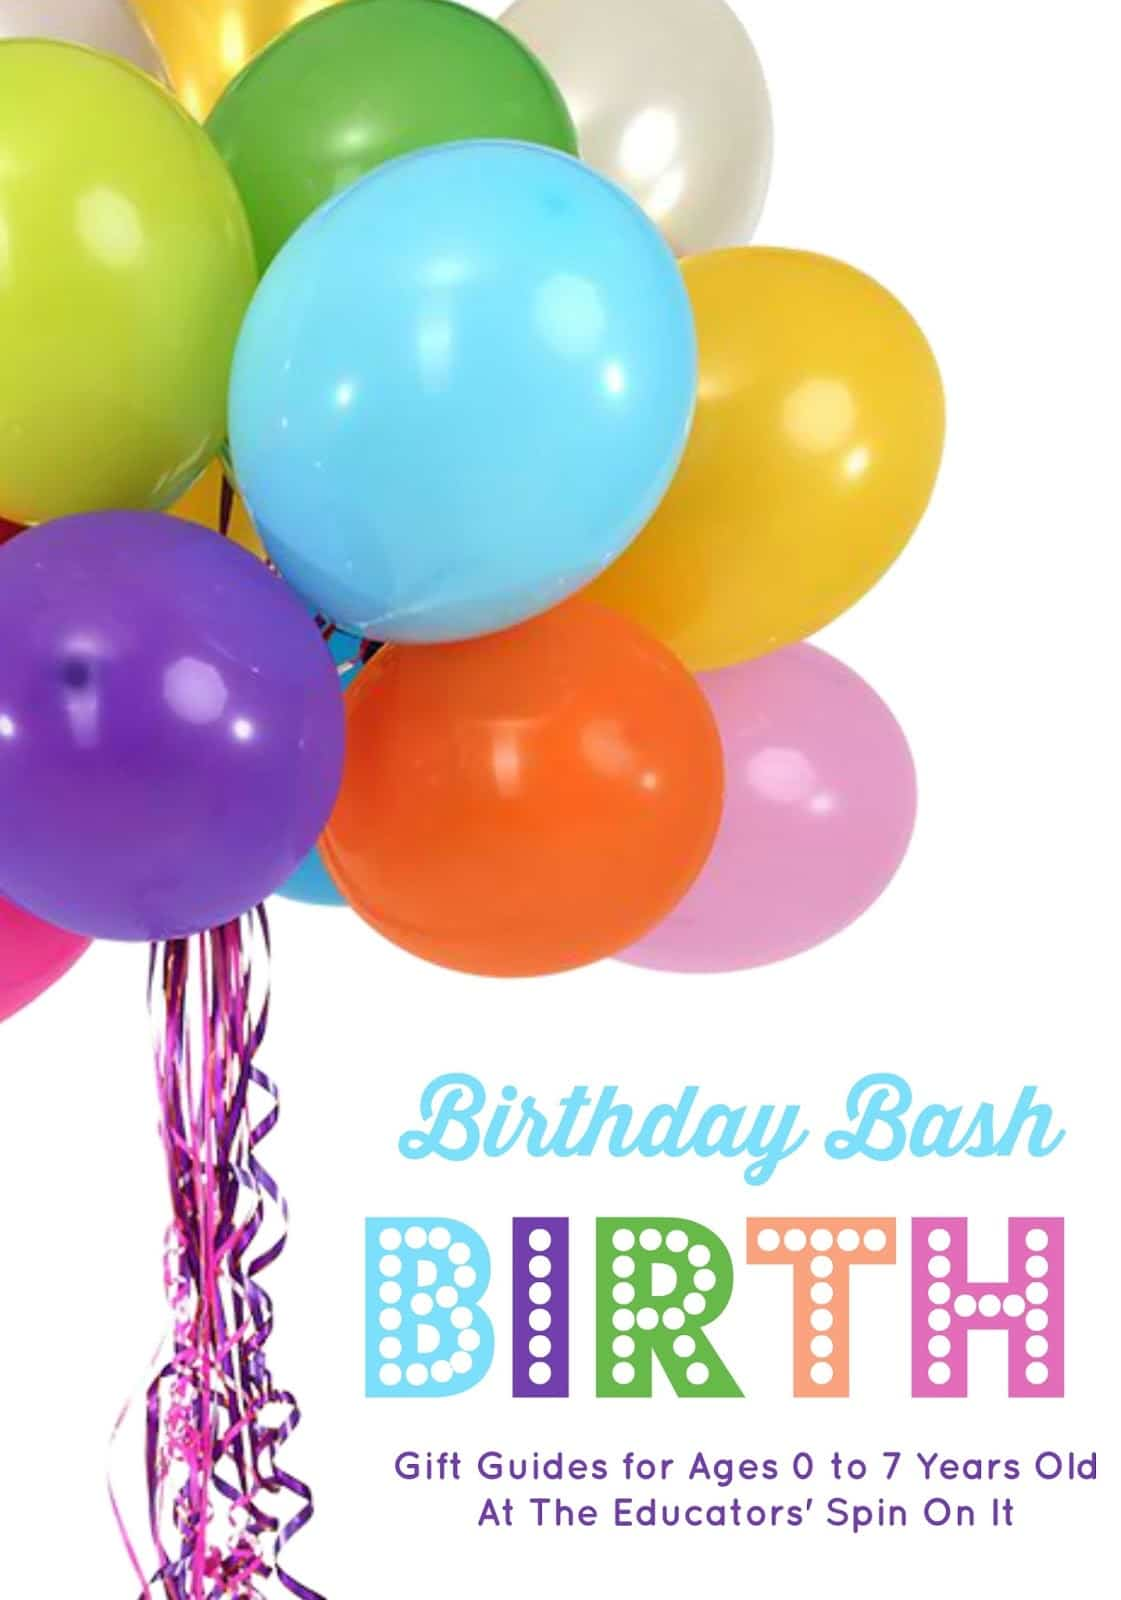 Gift Guide For Baby And Celebrating Birth Day The Educators Spin